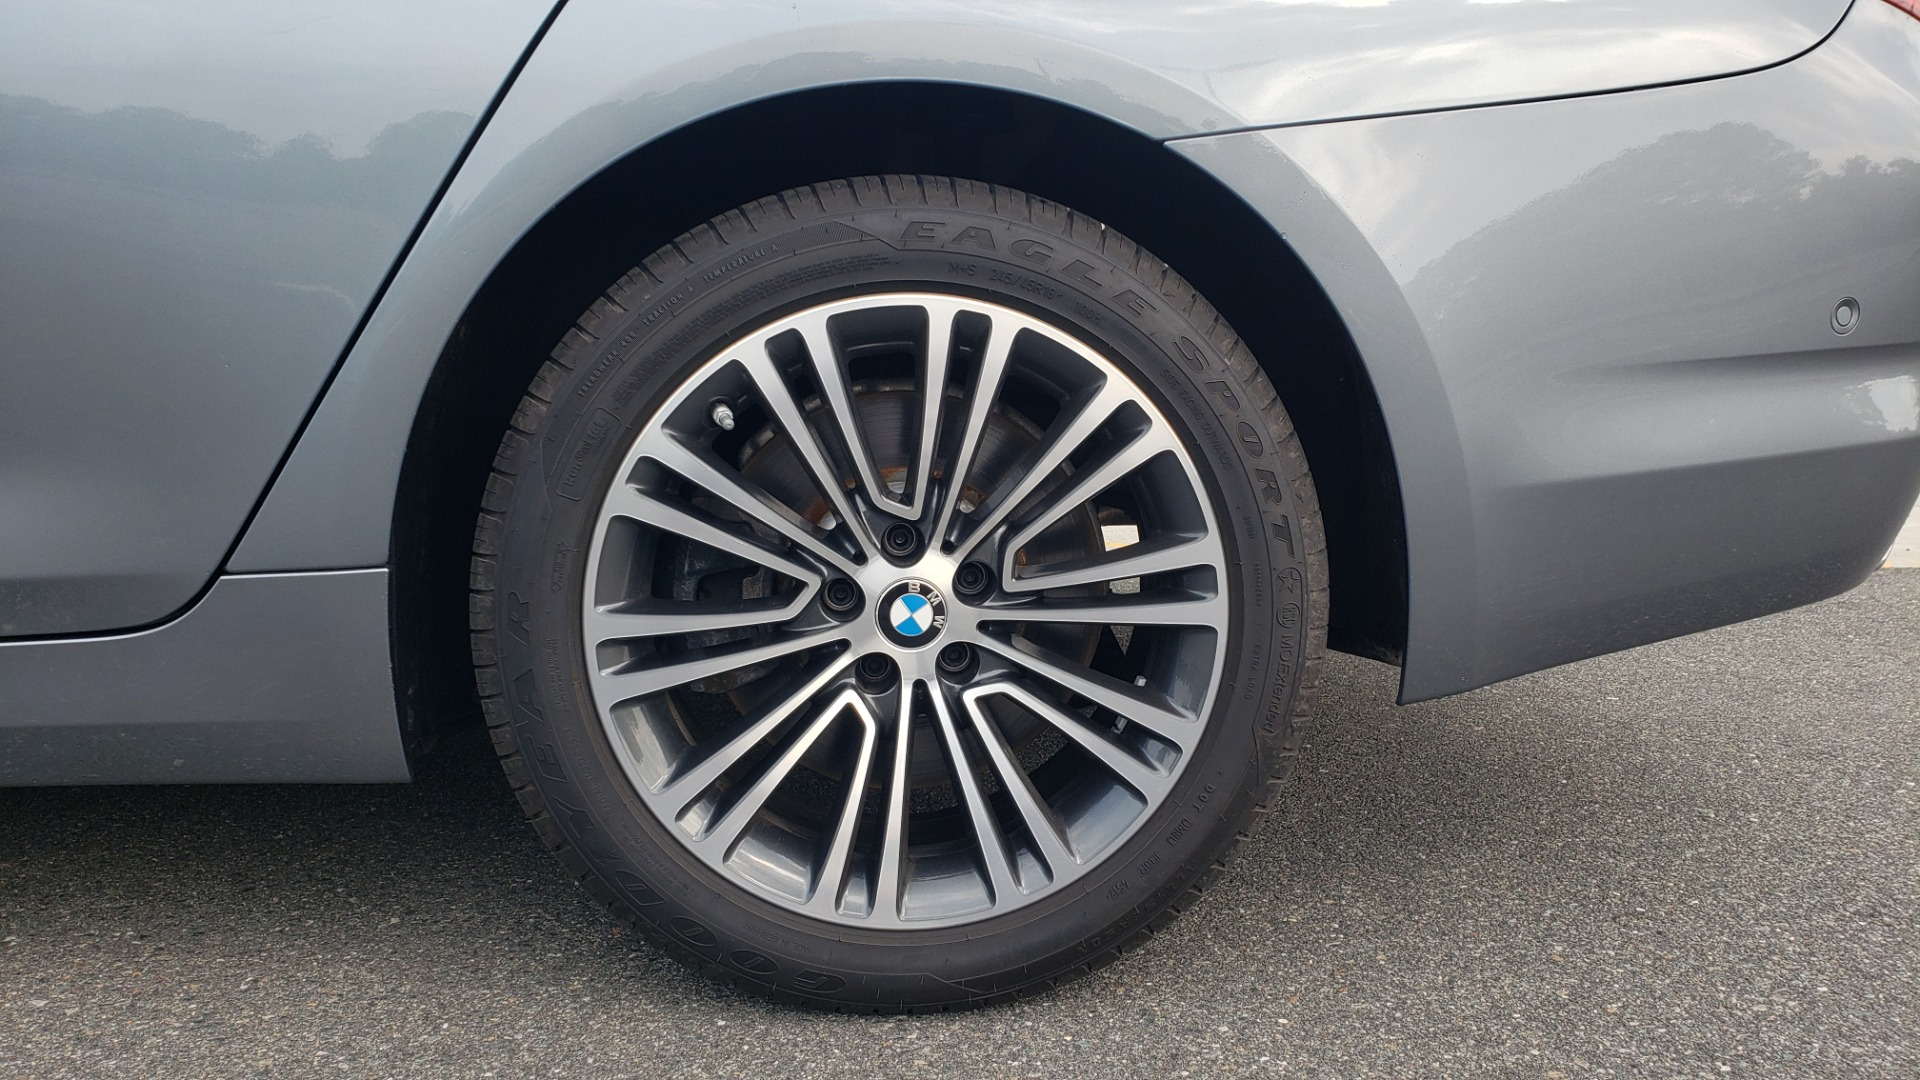 Used 2018 BMW 5 SERIES 540I XDRIVE PREMIUM / EXECUTIVE / LUXURY / H/K SND / REMOTE CONTROL PARKING for sale $40,995 at Formula Imports in Charlotte NC 28227 77